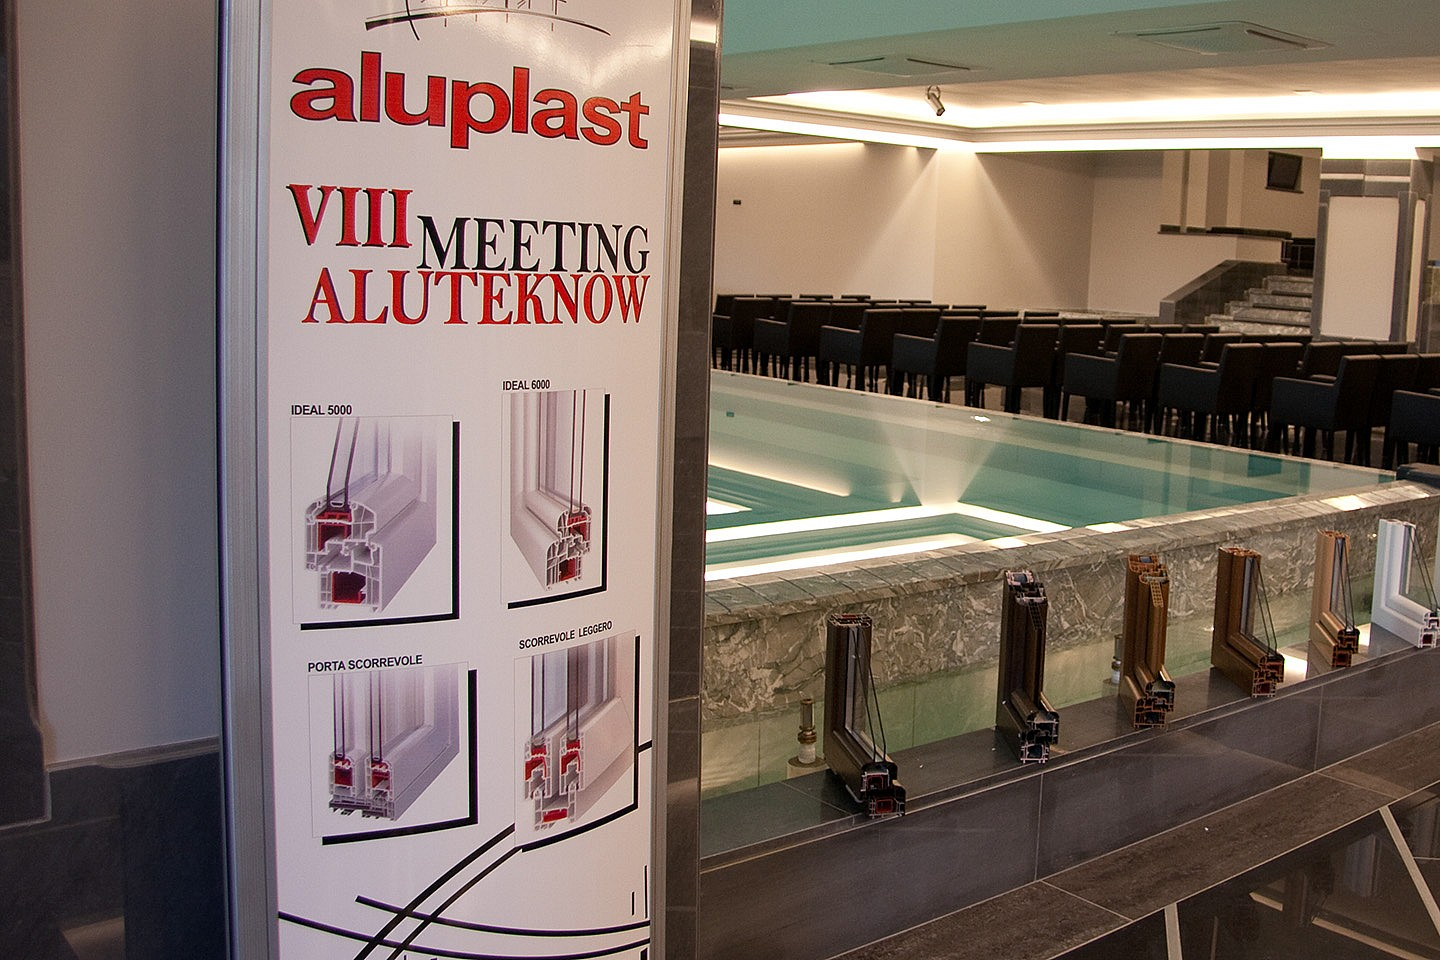 VIII Meeting Aluteknow